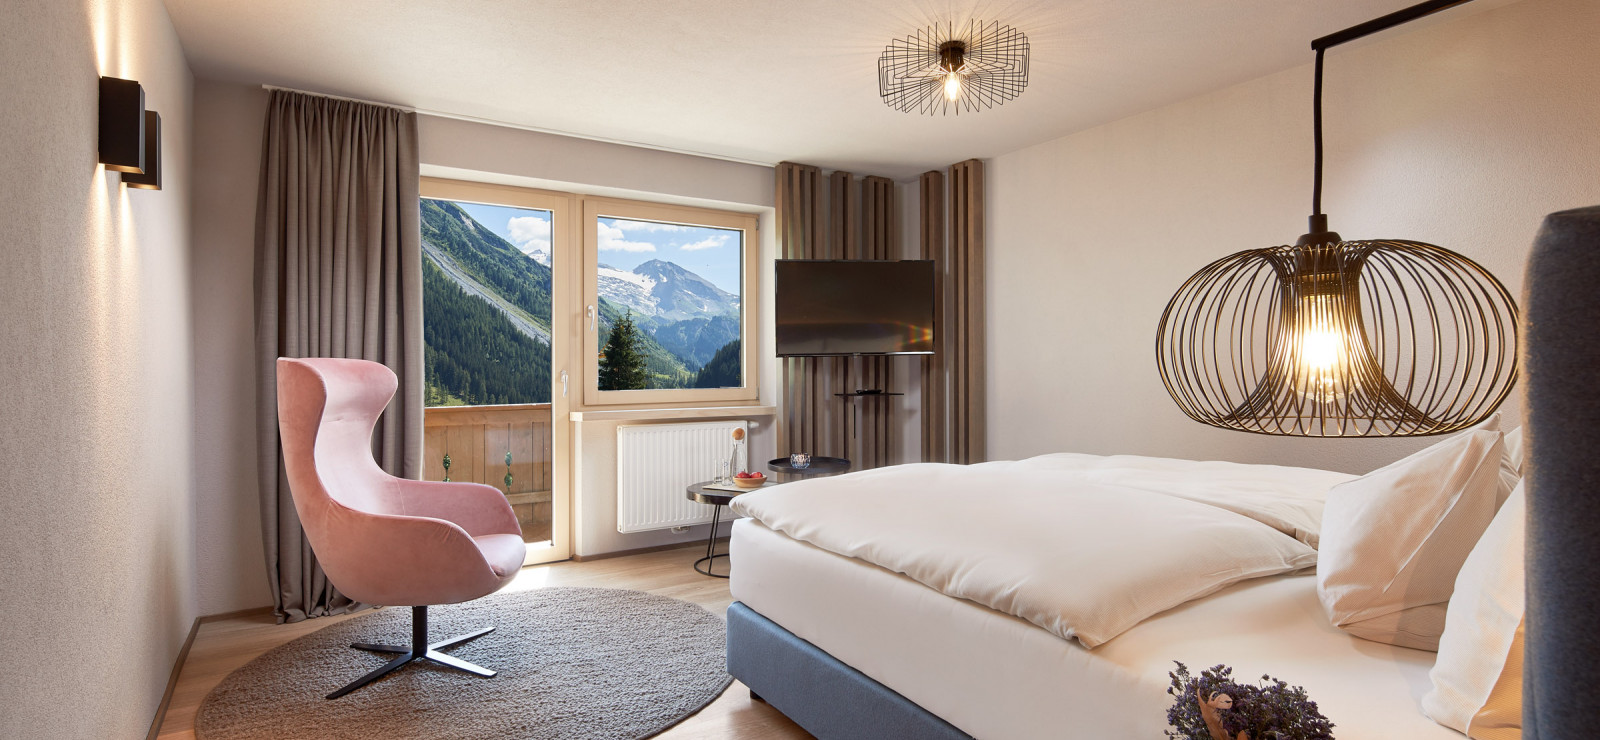 Adler Inn - Tyrol Mountain Resort Bilder | Bild 1